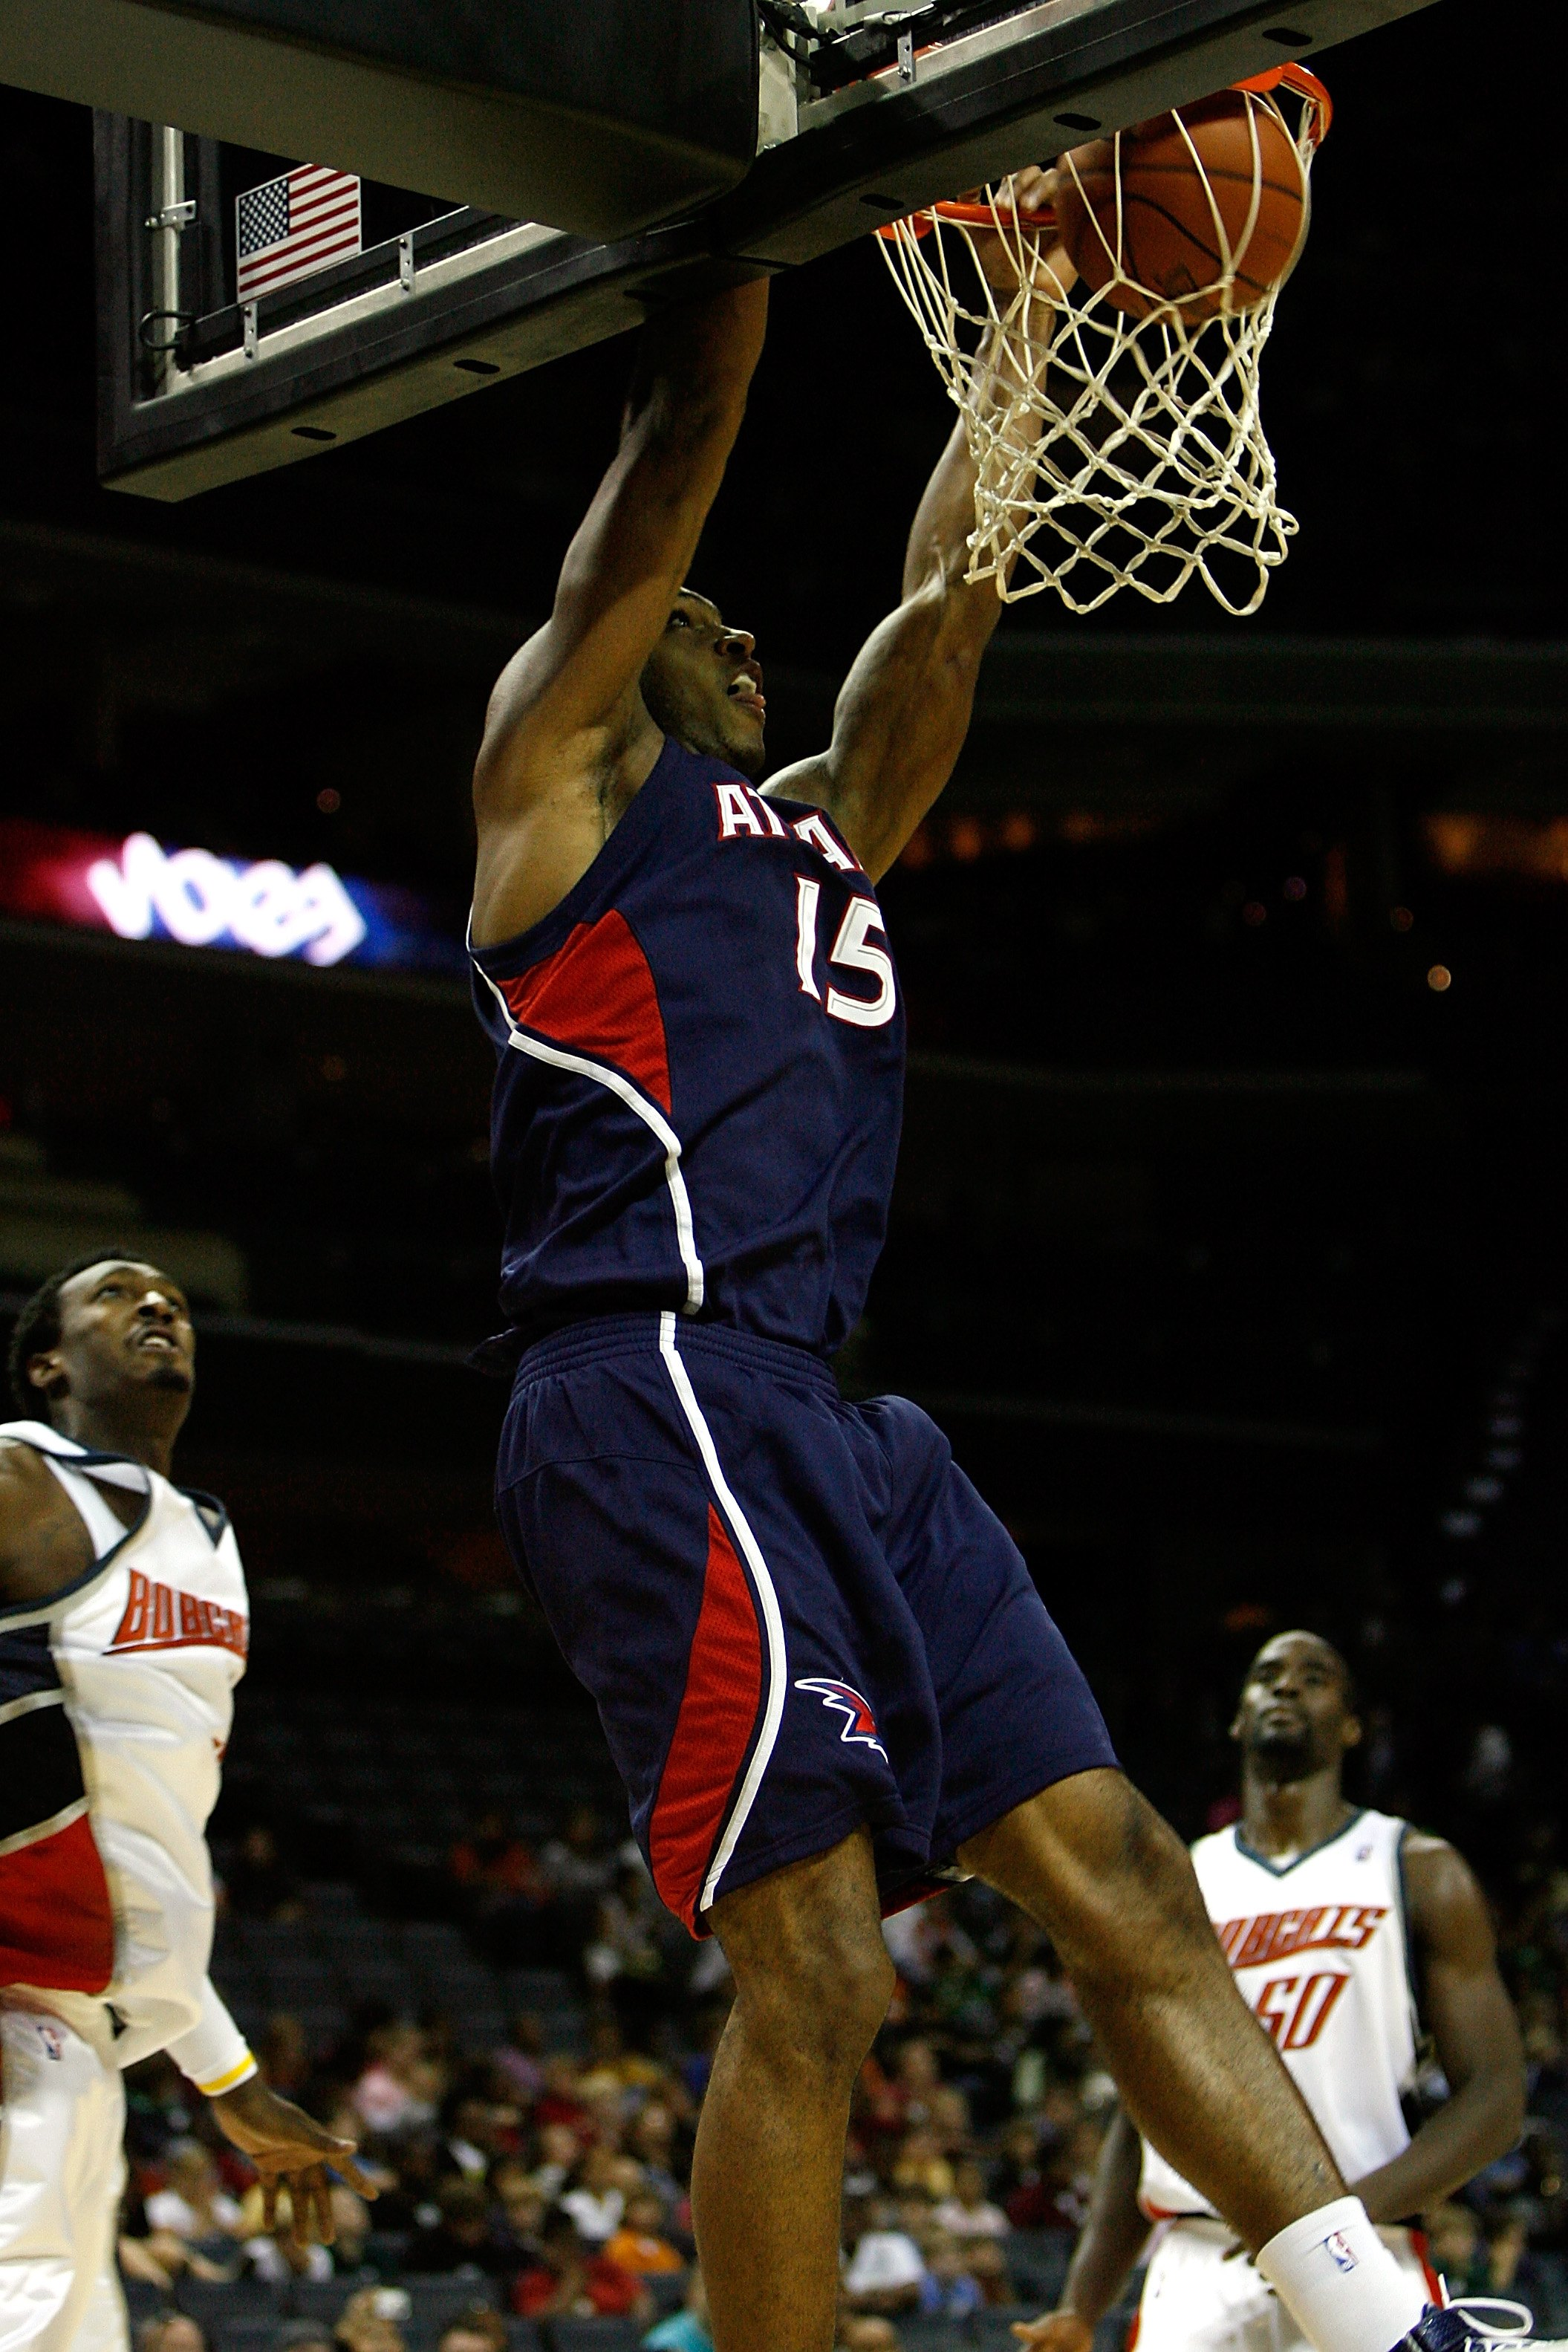 CHARLOTTE, NC - OCTOBER 18:  Al Horford #15 of the Atlanta Hawks slam dunks during the game against the Charlotte Bobcats at Charlotte Bobcats Arena on October 18, 2007 in Charlotte, North Carolina.  The Hawks won 104-98.  NOTE TO USER: User expressly ack